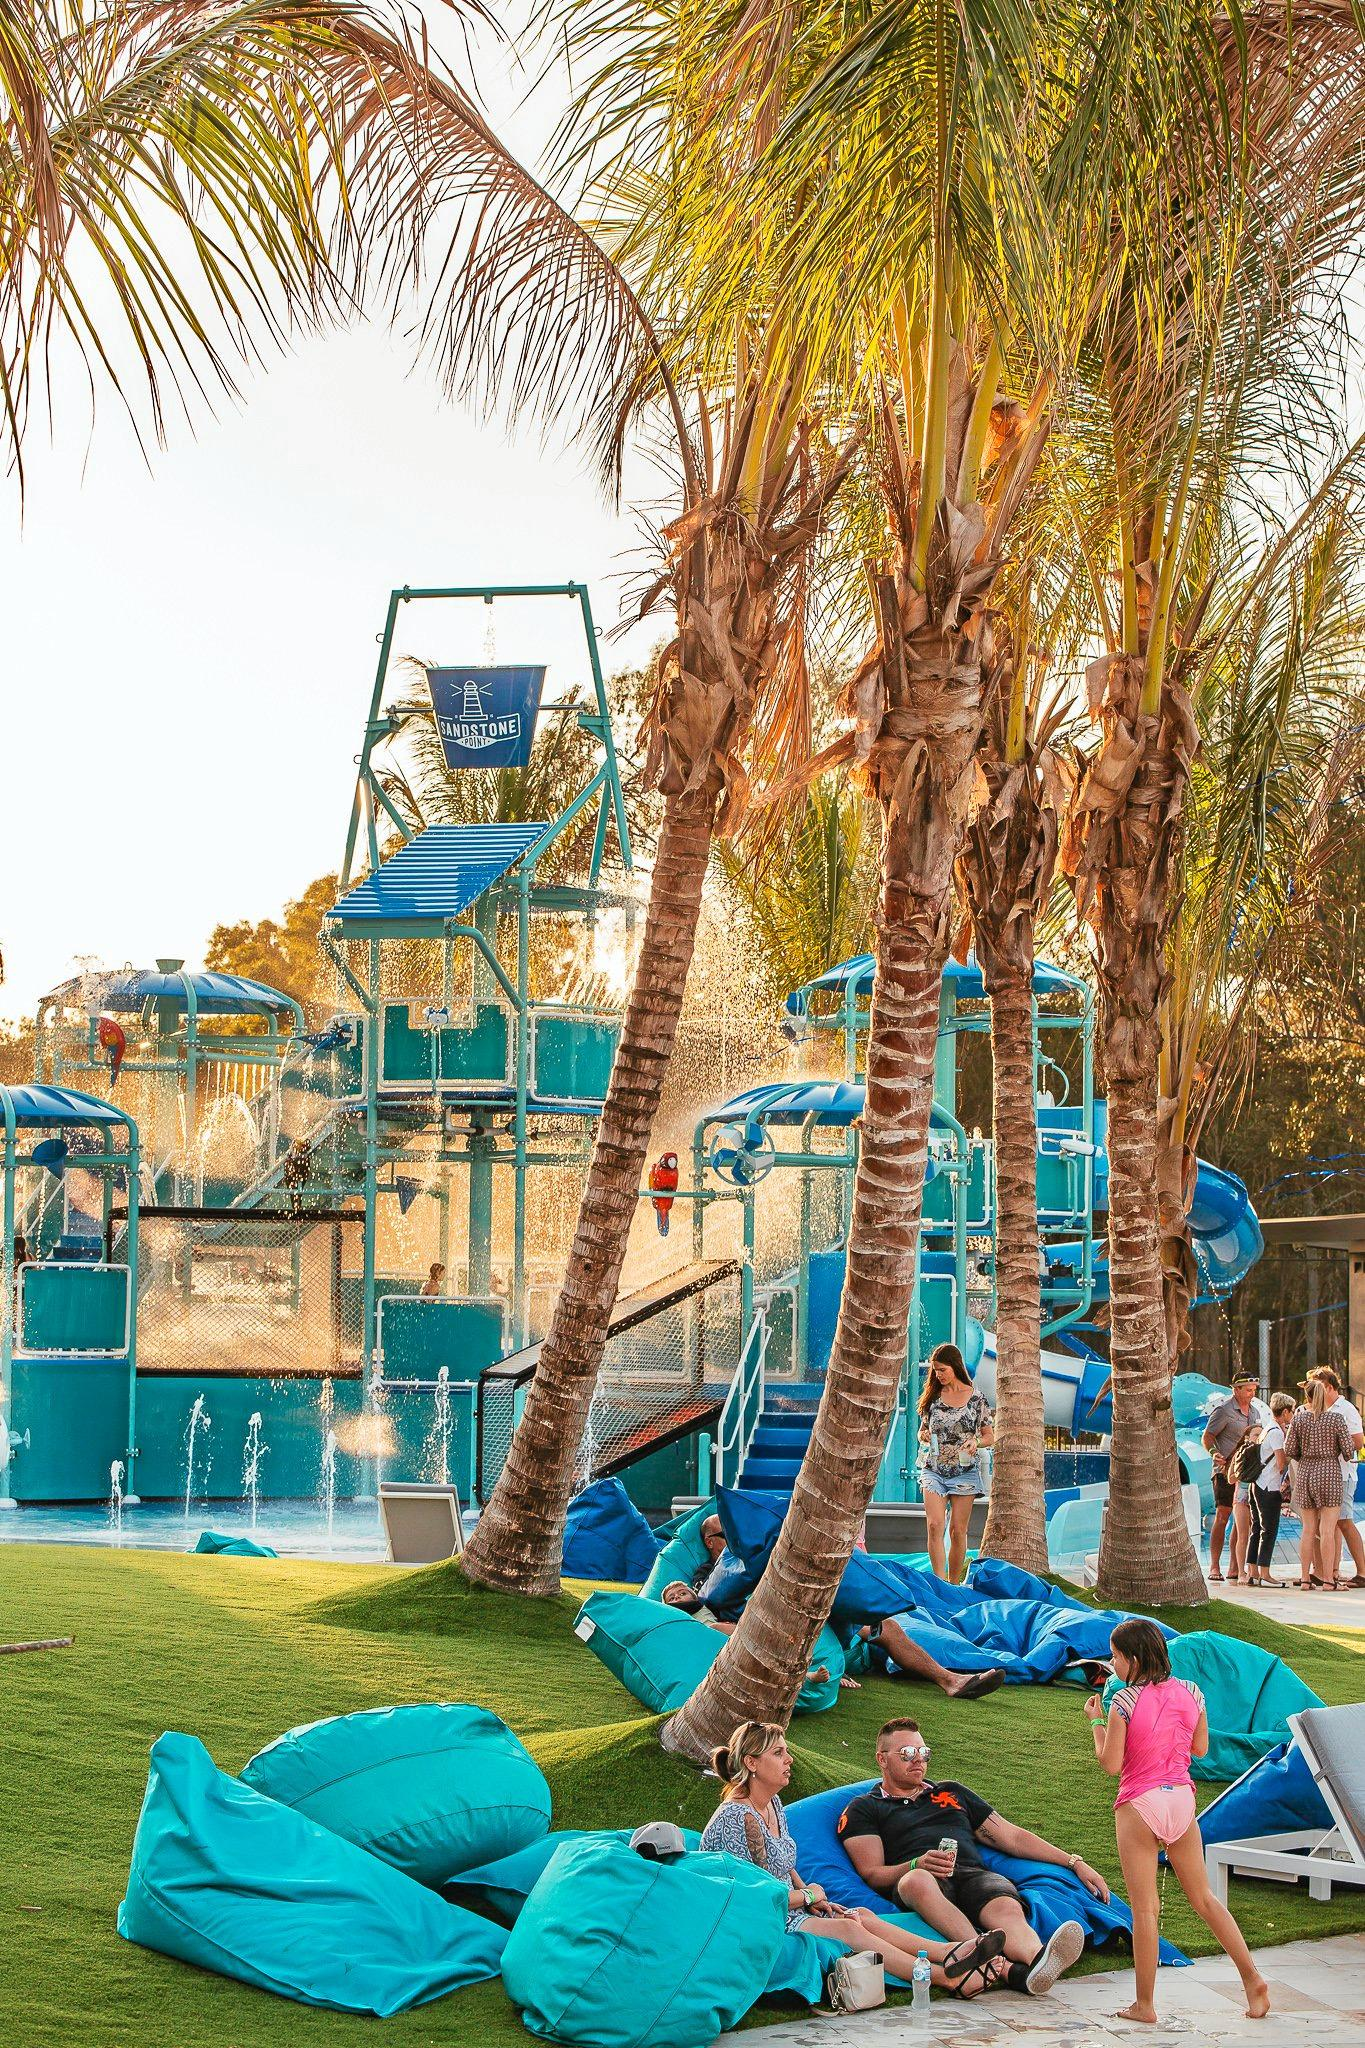 Relax under the shady palms while the kids take a dip.